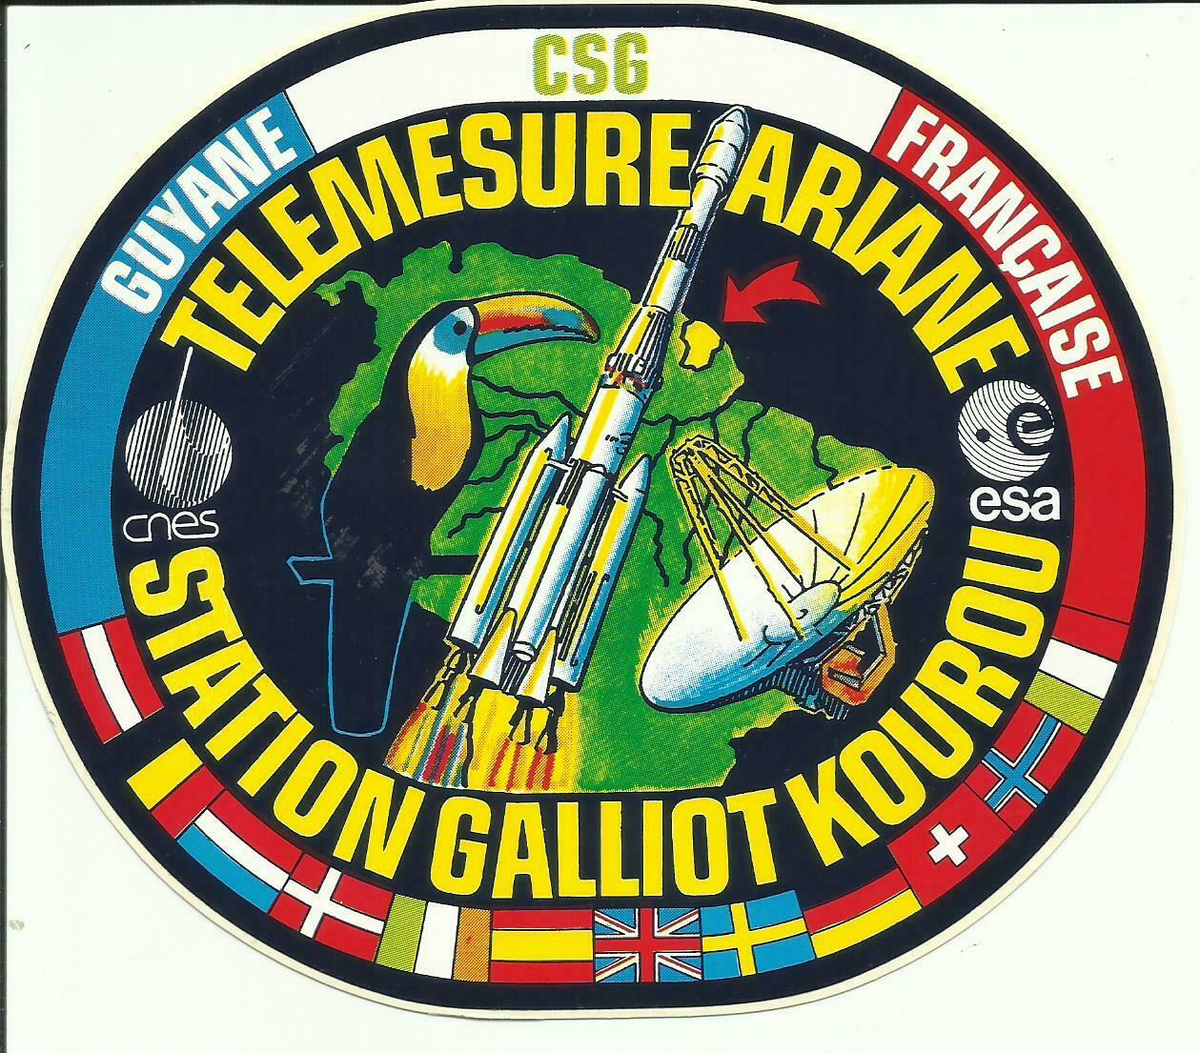 Never knew the Galliot tracking station had its own sticker...  #CSG #ESA https://t.co/TYFMQ3qUBz